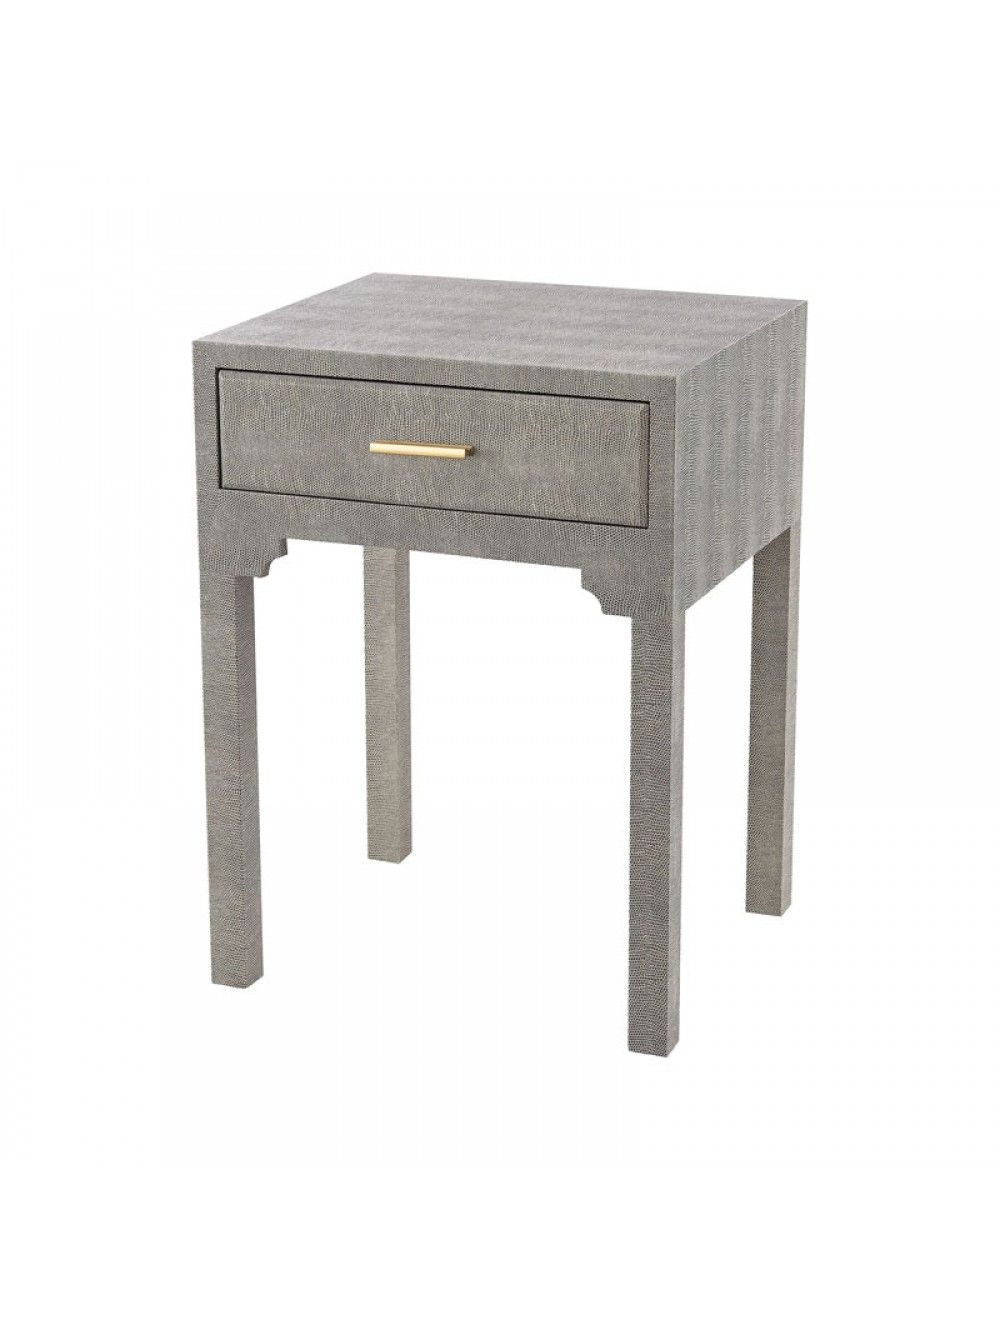 Melana Bedside Table Gray And Gold Furniture Grey Side Table Sofa Tables